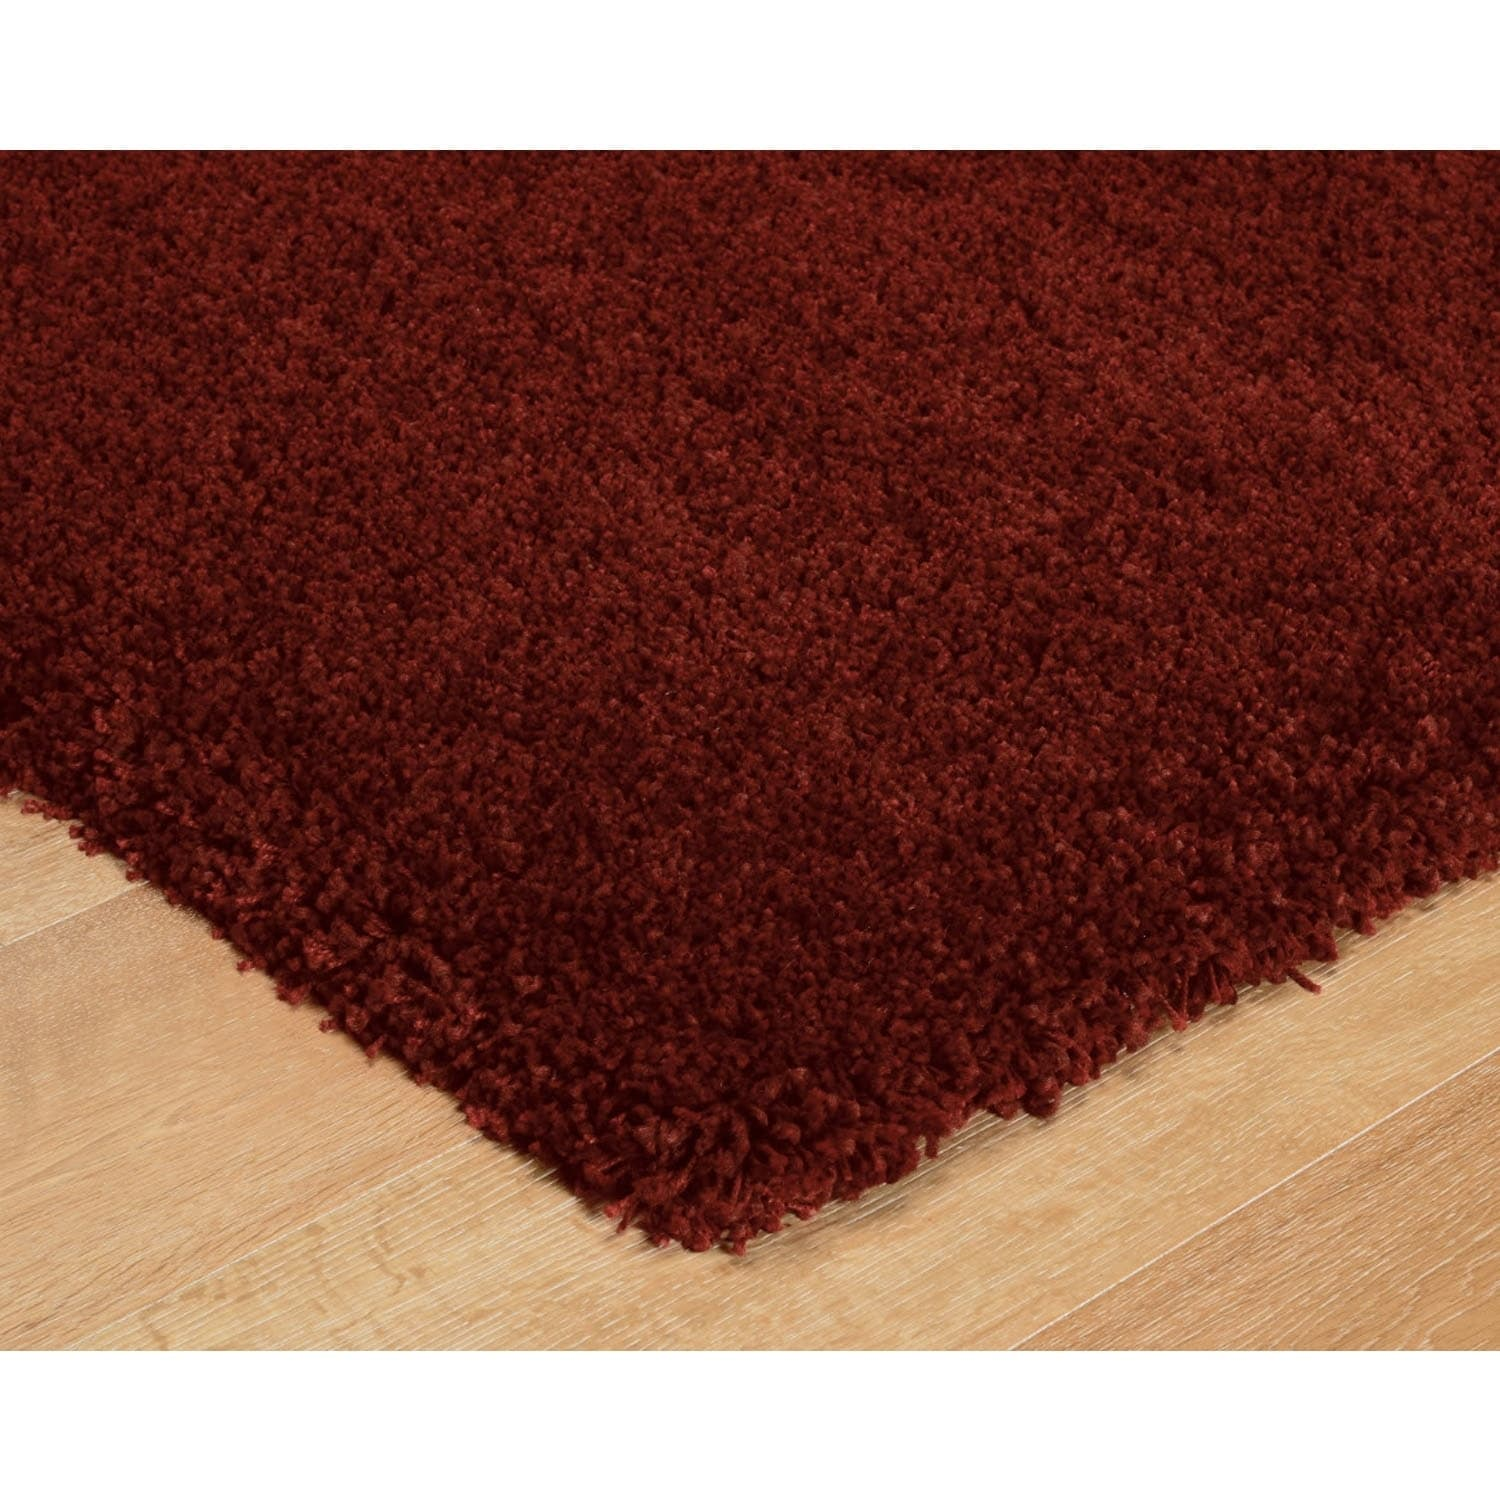 Luxury Red Thick Shag Area Rug - 8 x 10 (Red - 8 x 10)